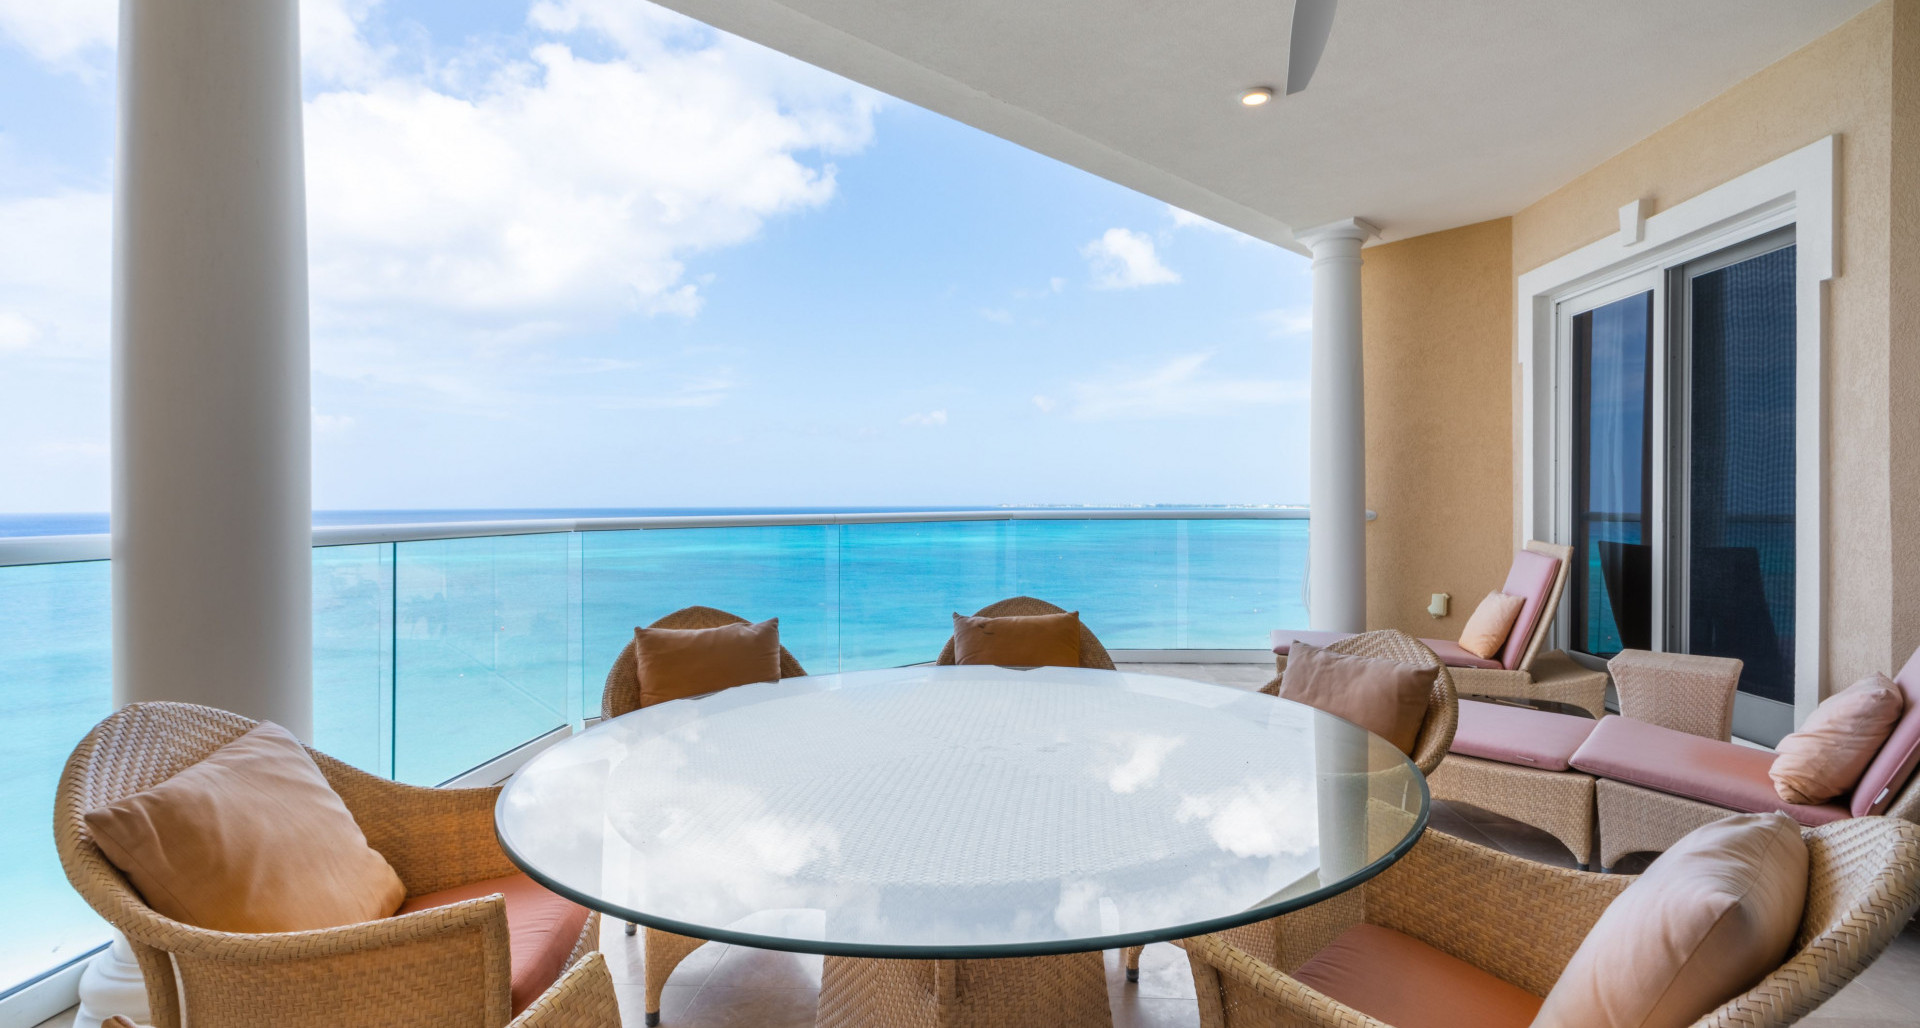 RE/MAX real estate, Cayman Islands, W Bay Bch South, Freehold - Water's Edge is in t